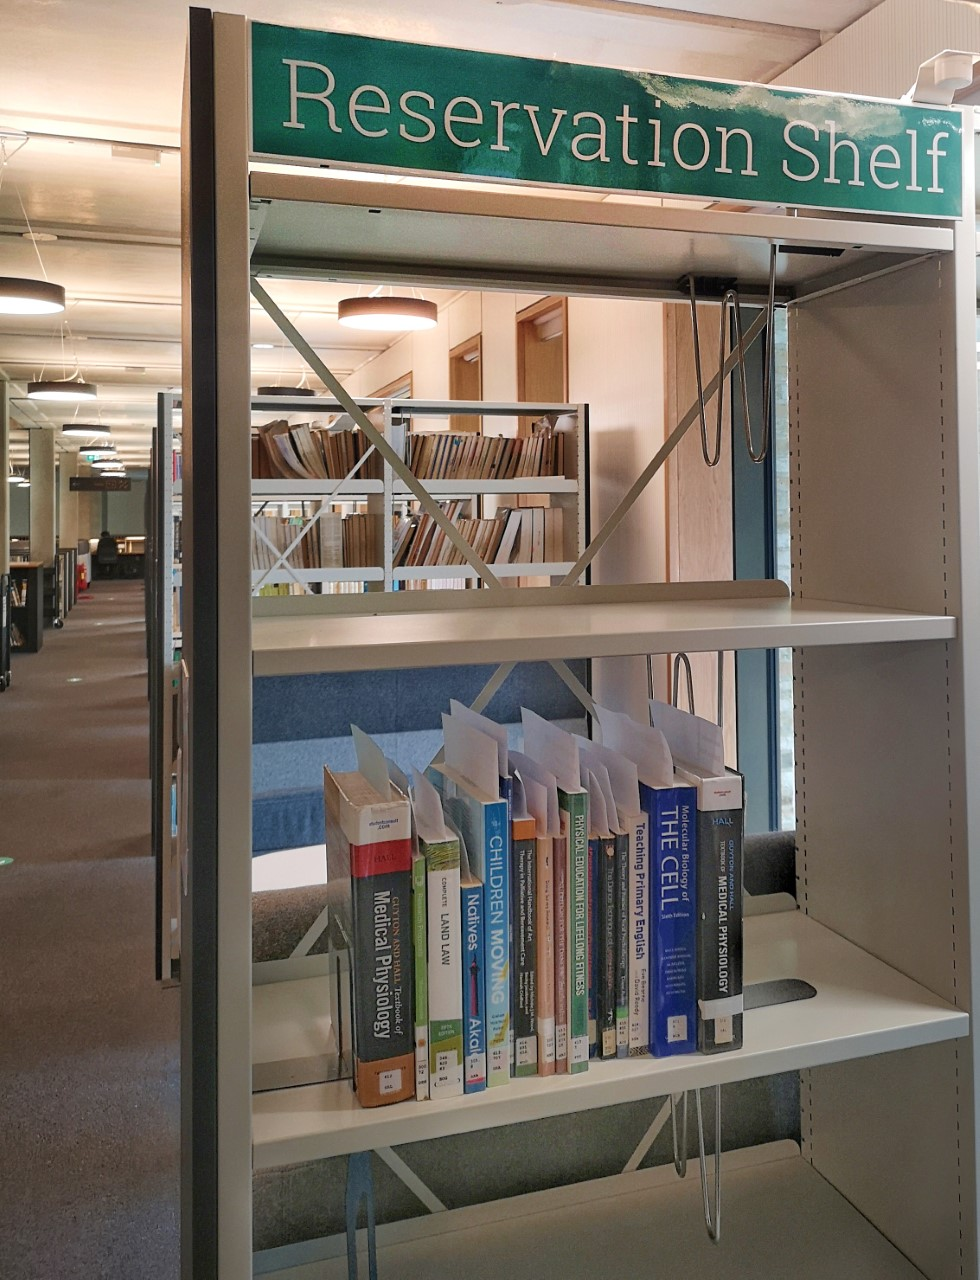 Reservation shelves in the Library located on the ground floor